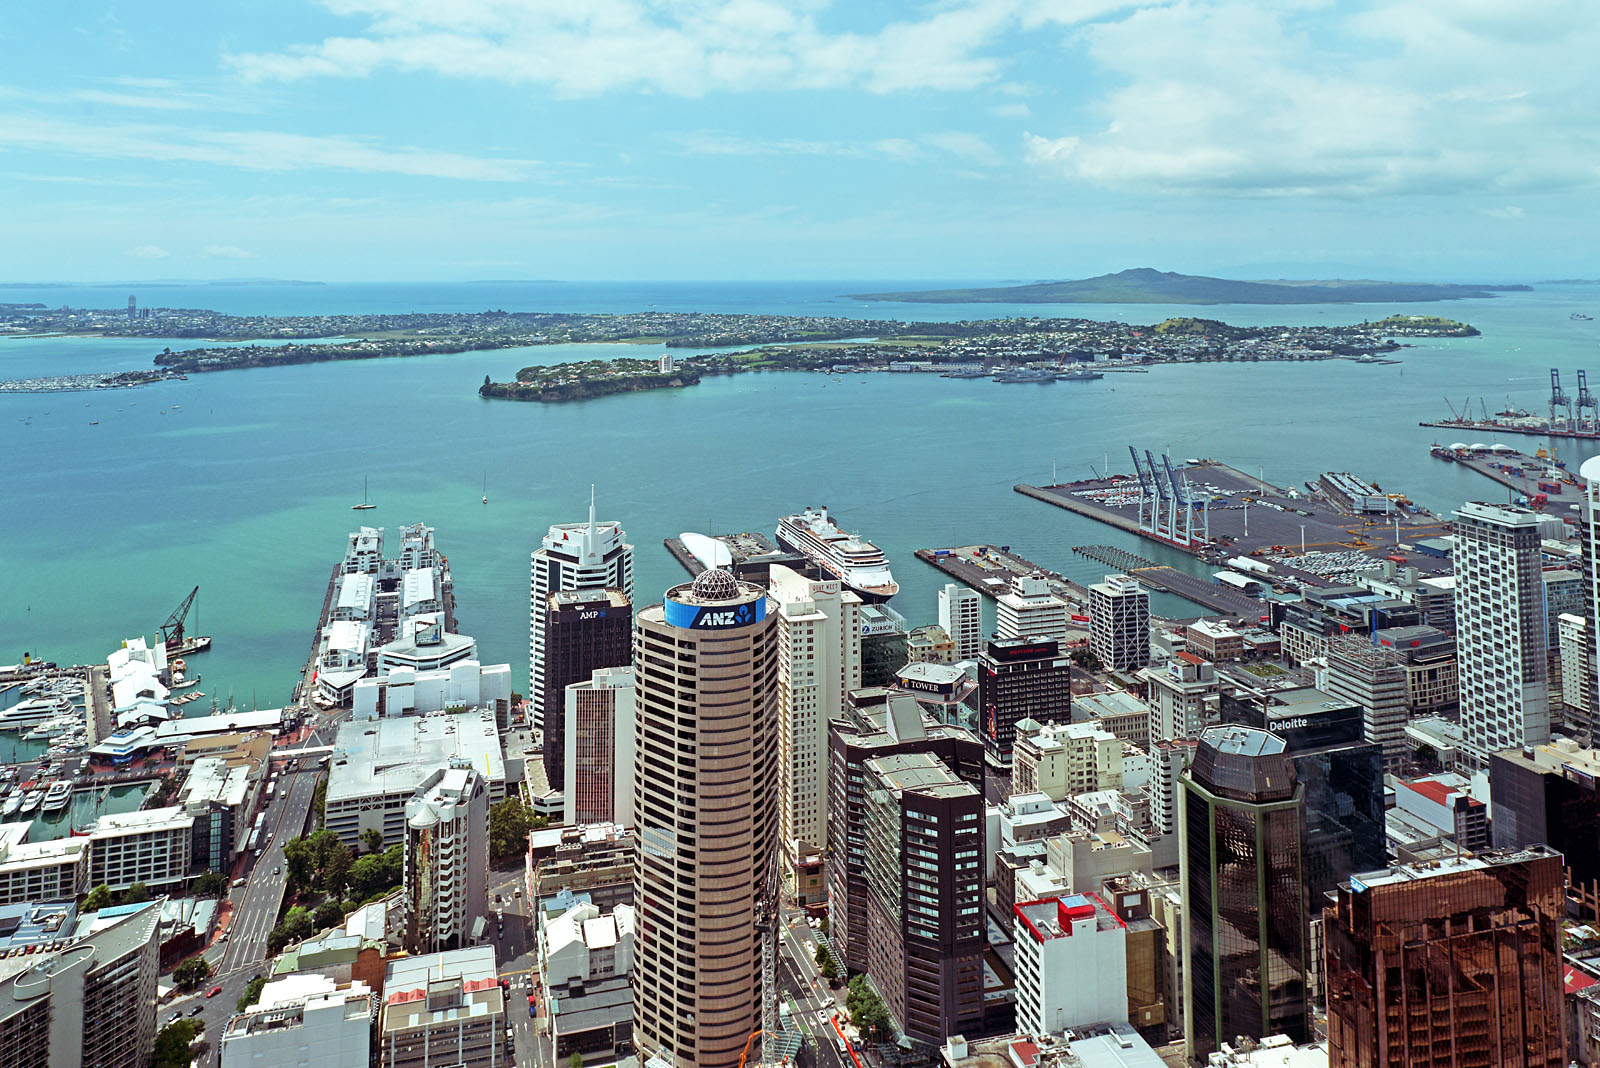 View from the Sky Tower on the ship...